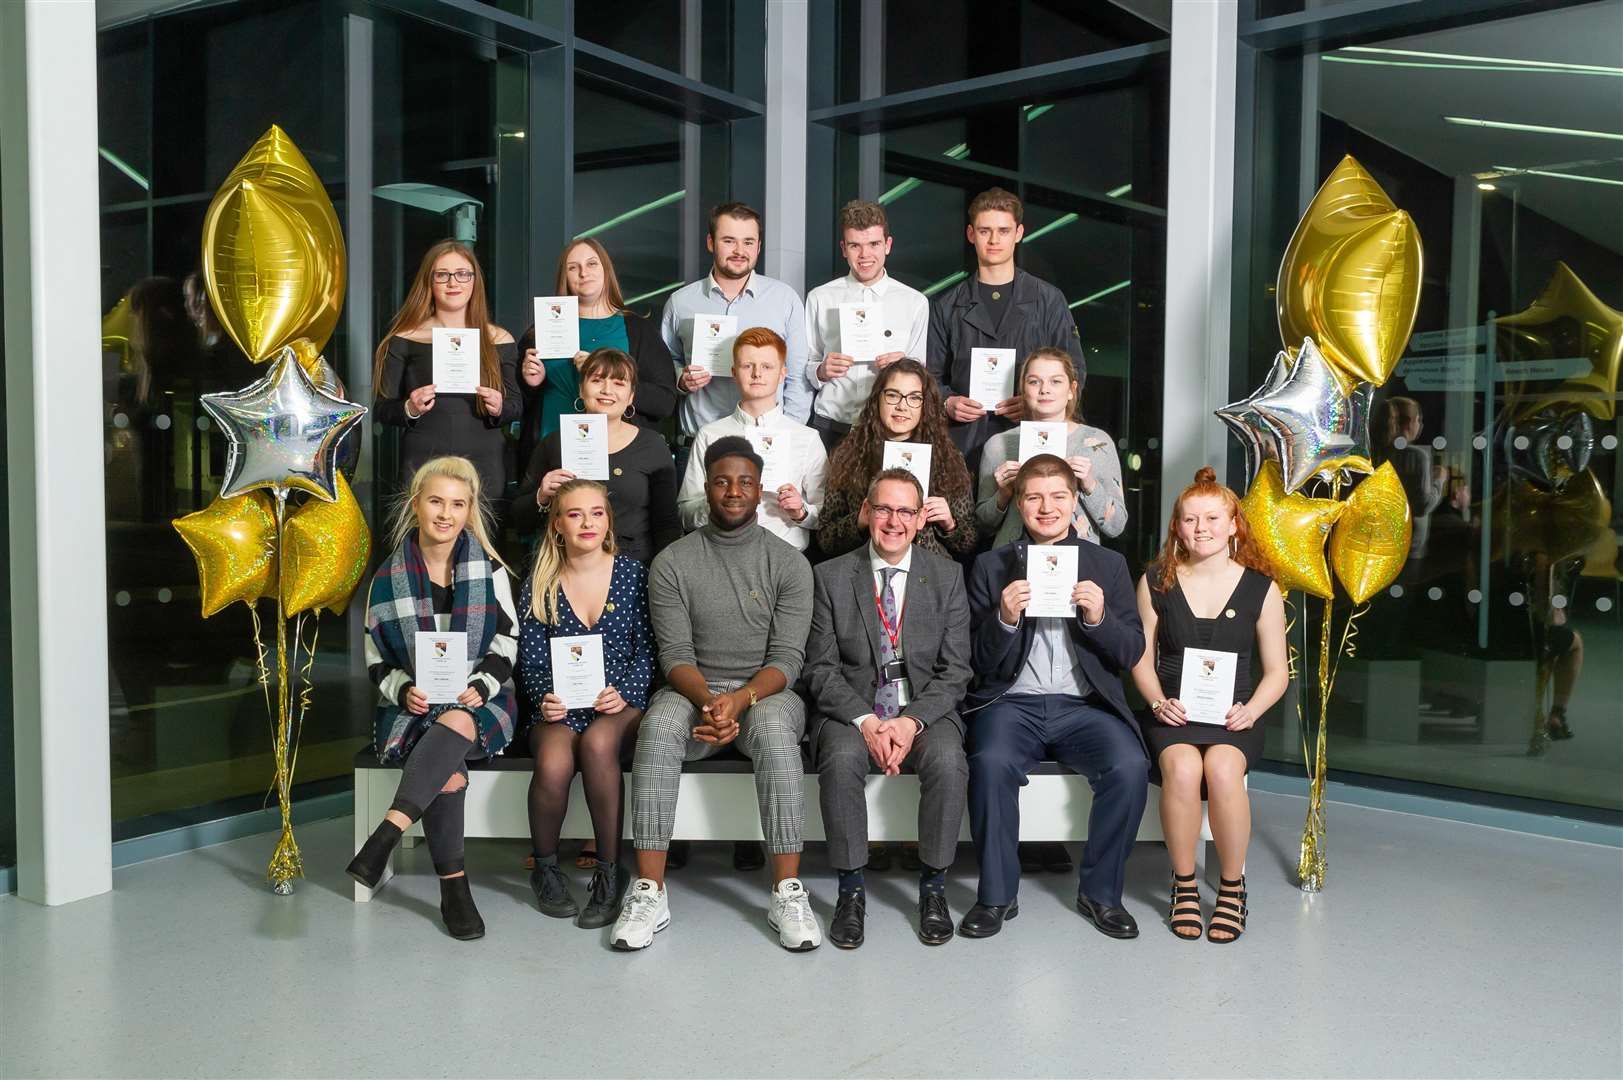 Students enjoy their success at the College of West Anglia's celebration evening. Pictures: Paul Tibbs (6464429)